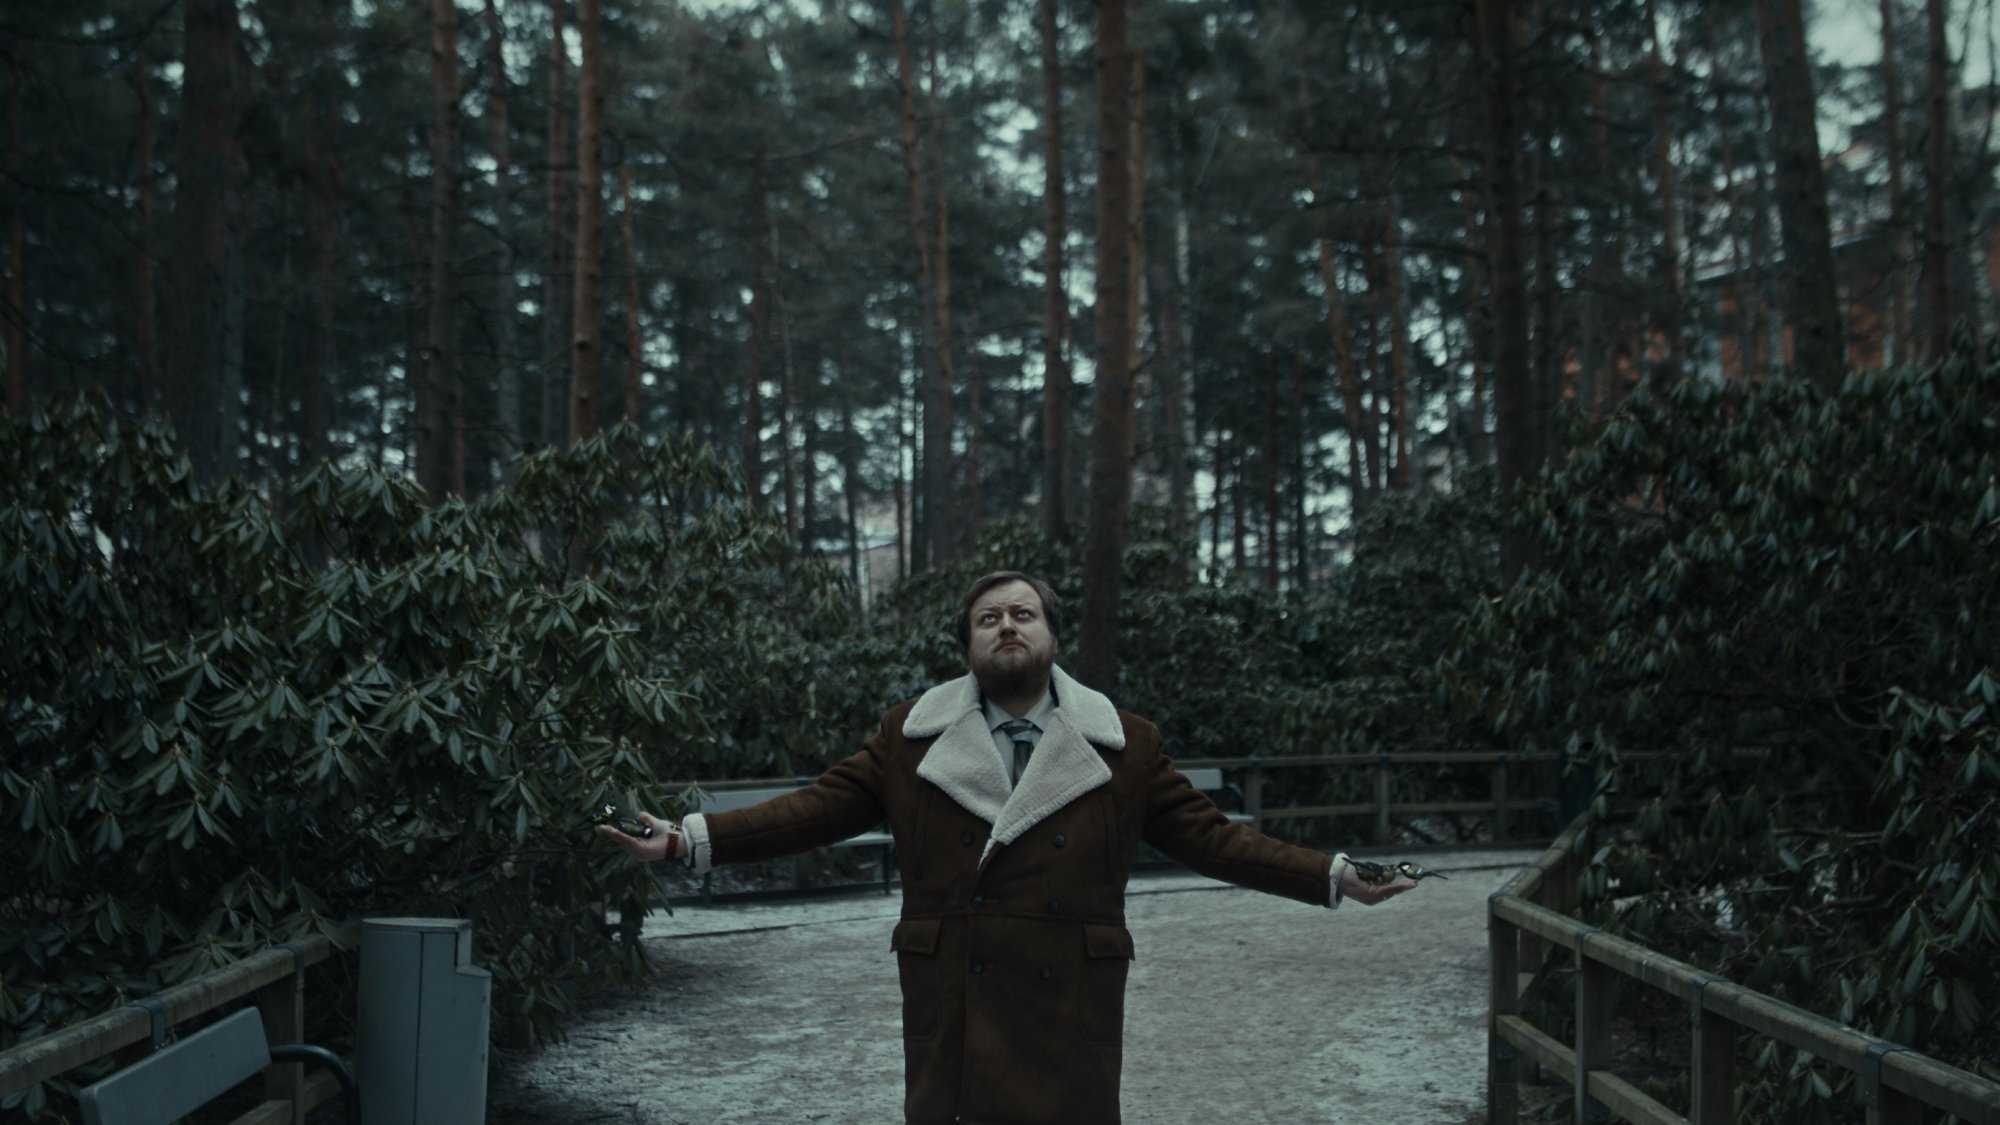 a man standing in a forest